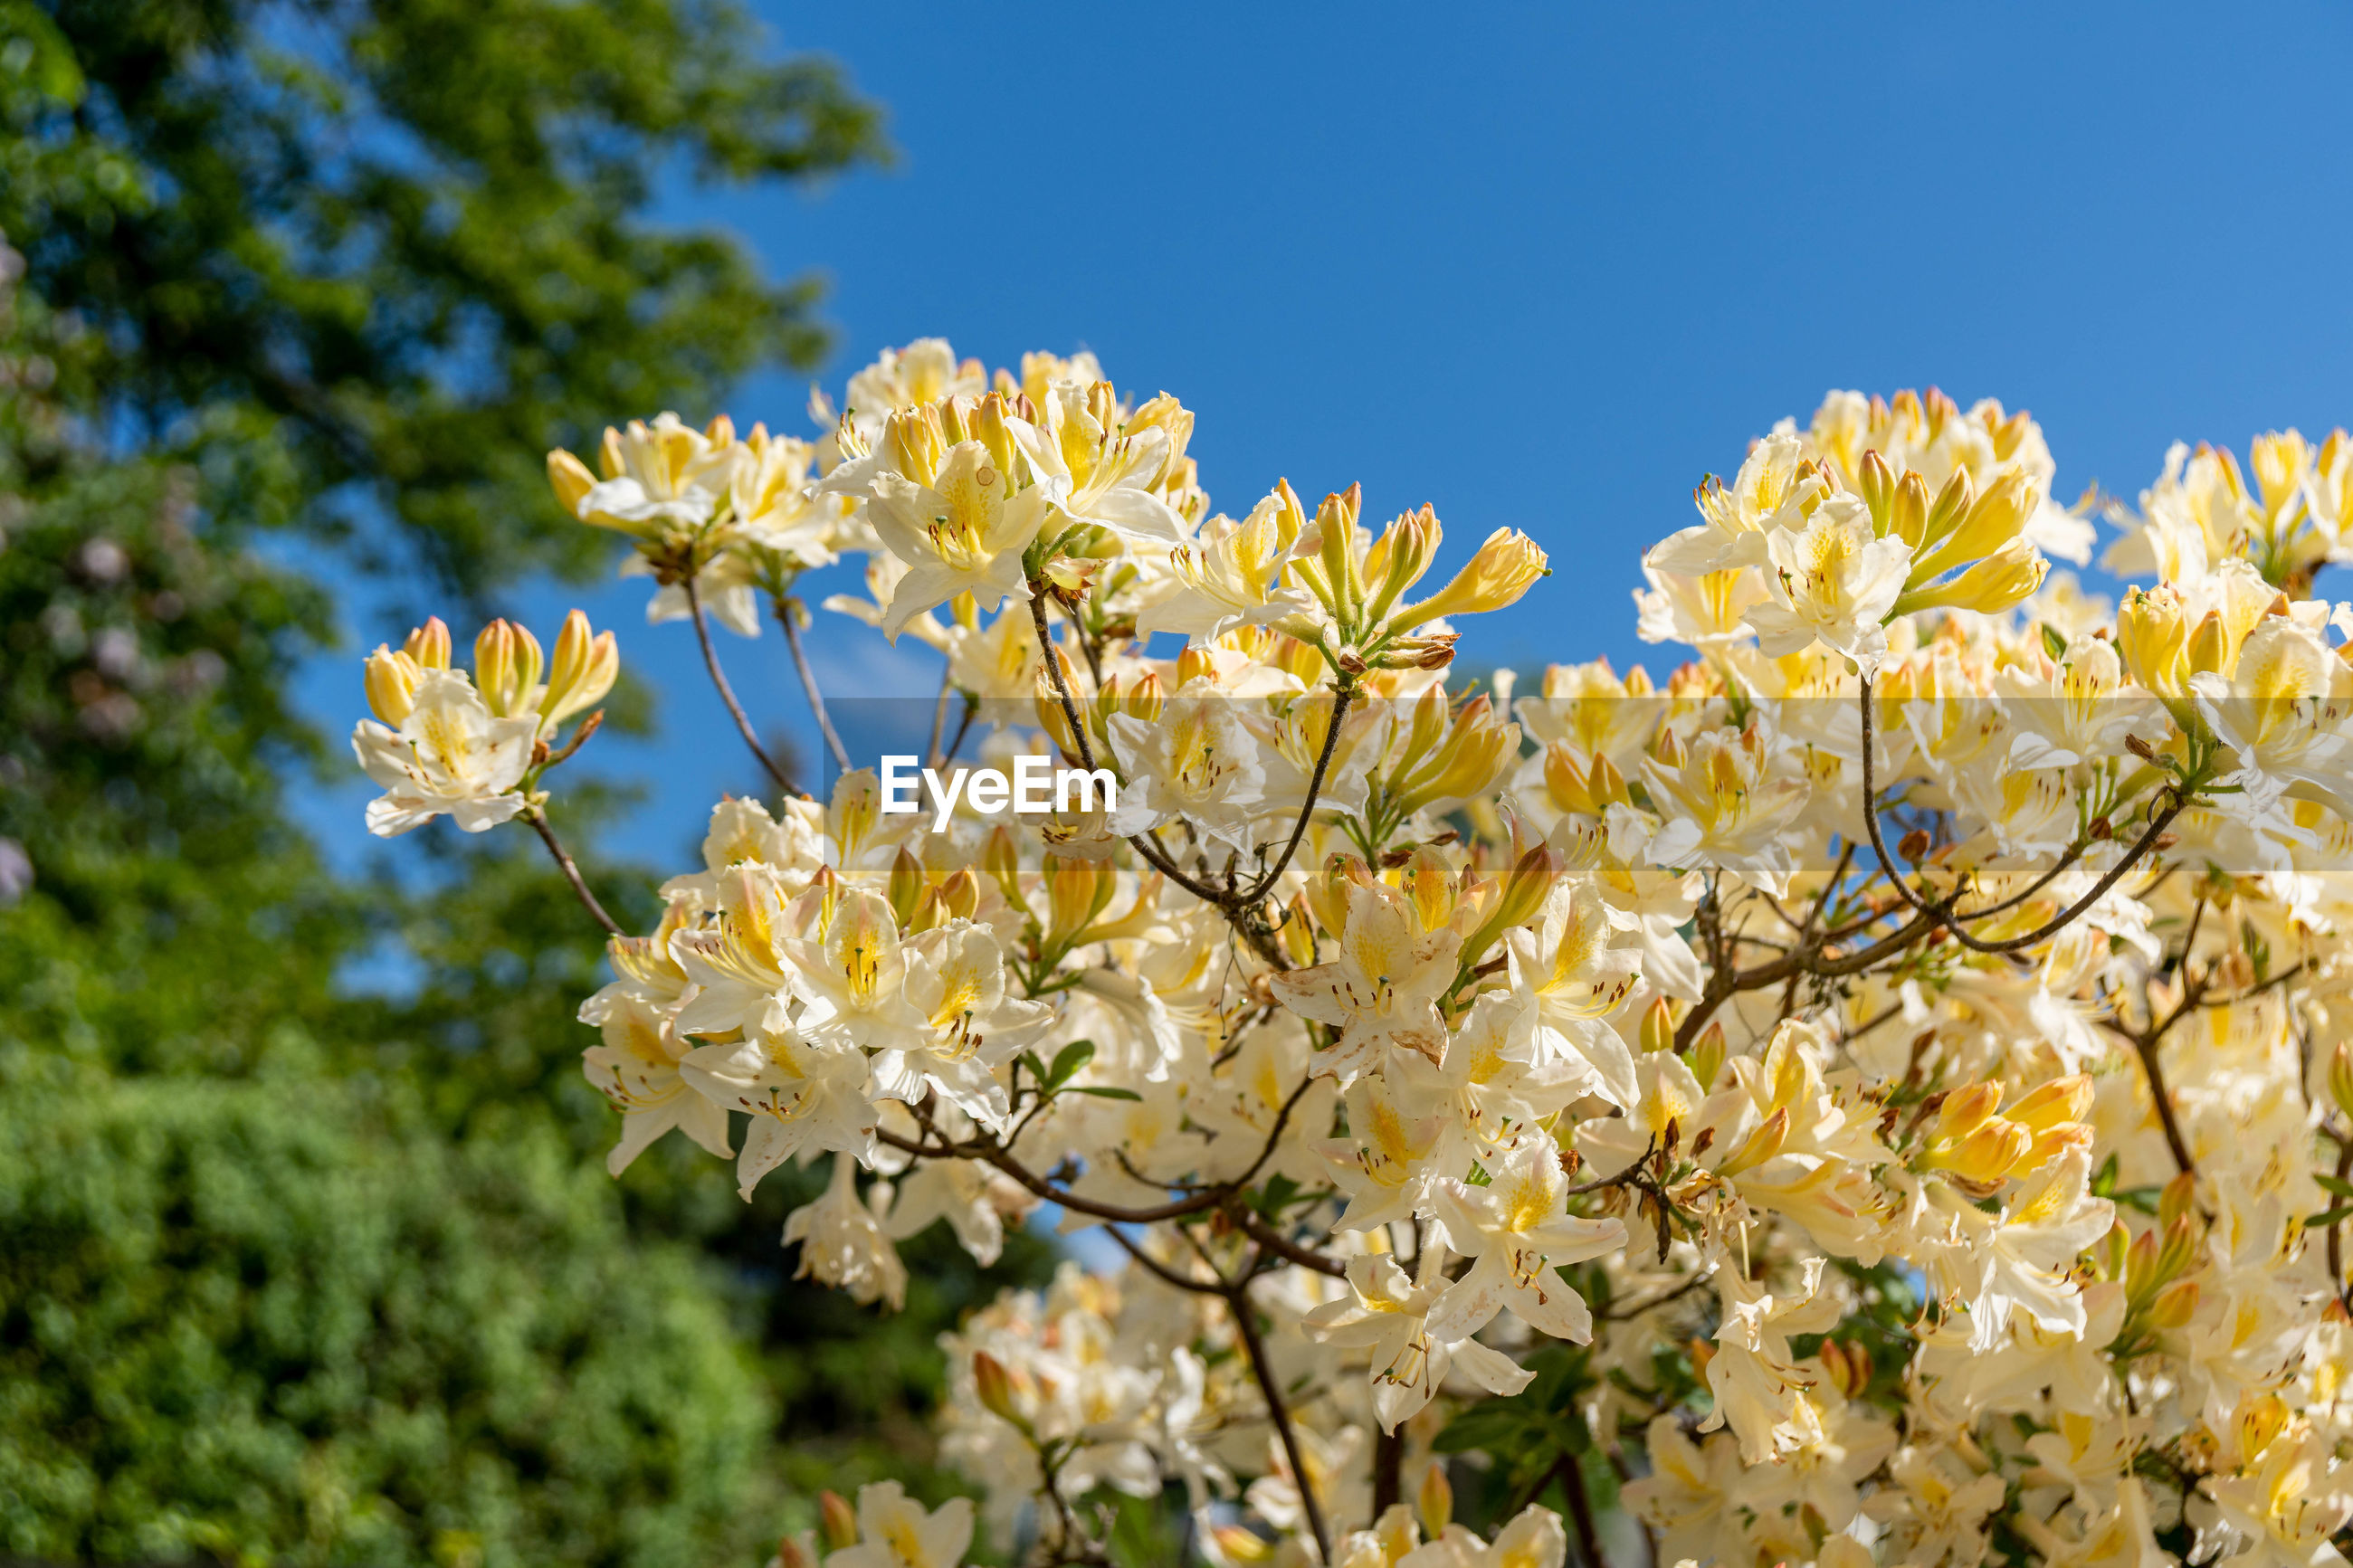 CLOSE-UP OF YELLOW CHERRY BLOSSOMS AGAINST SKY